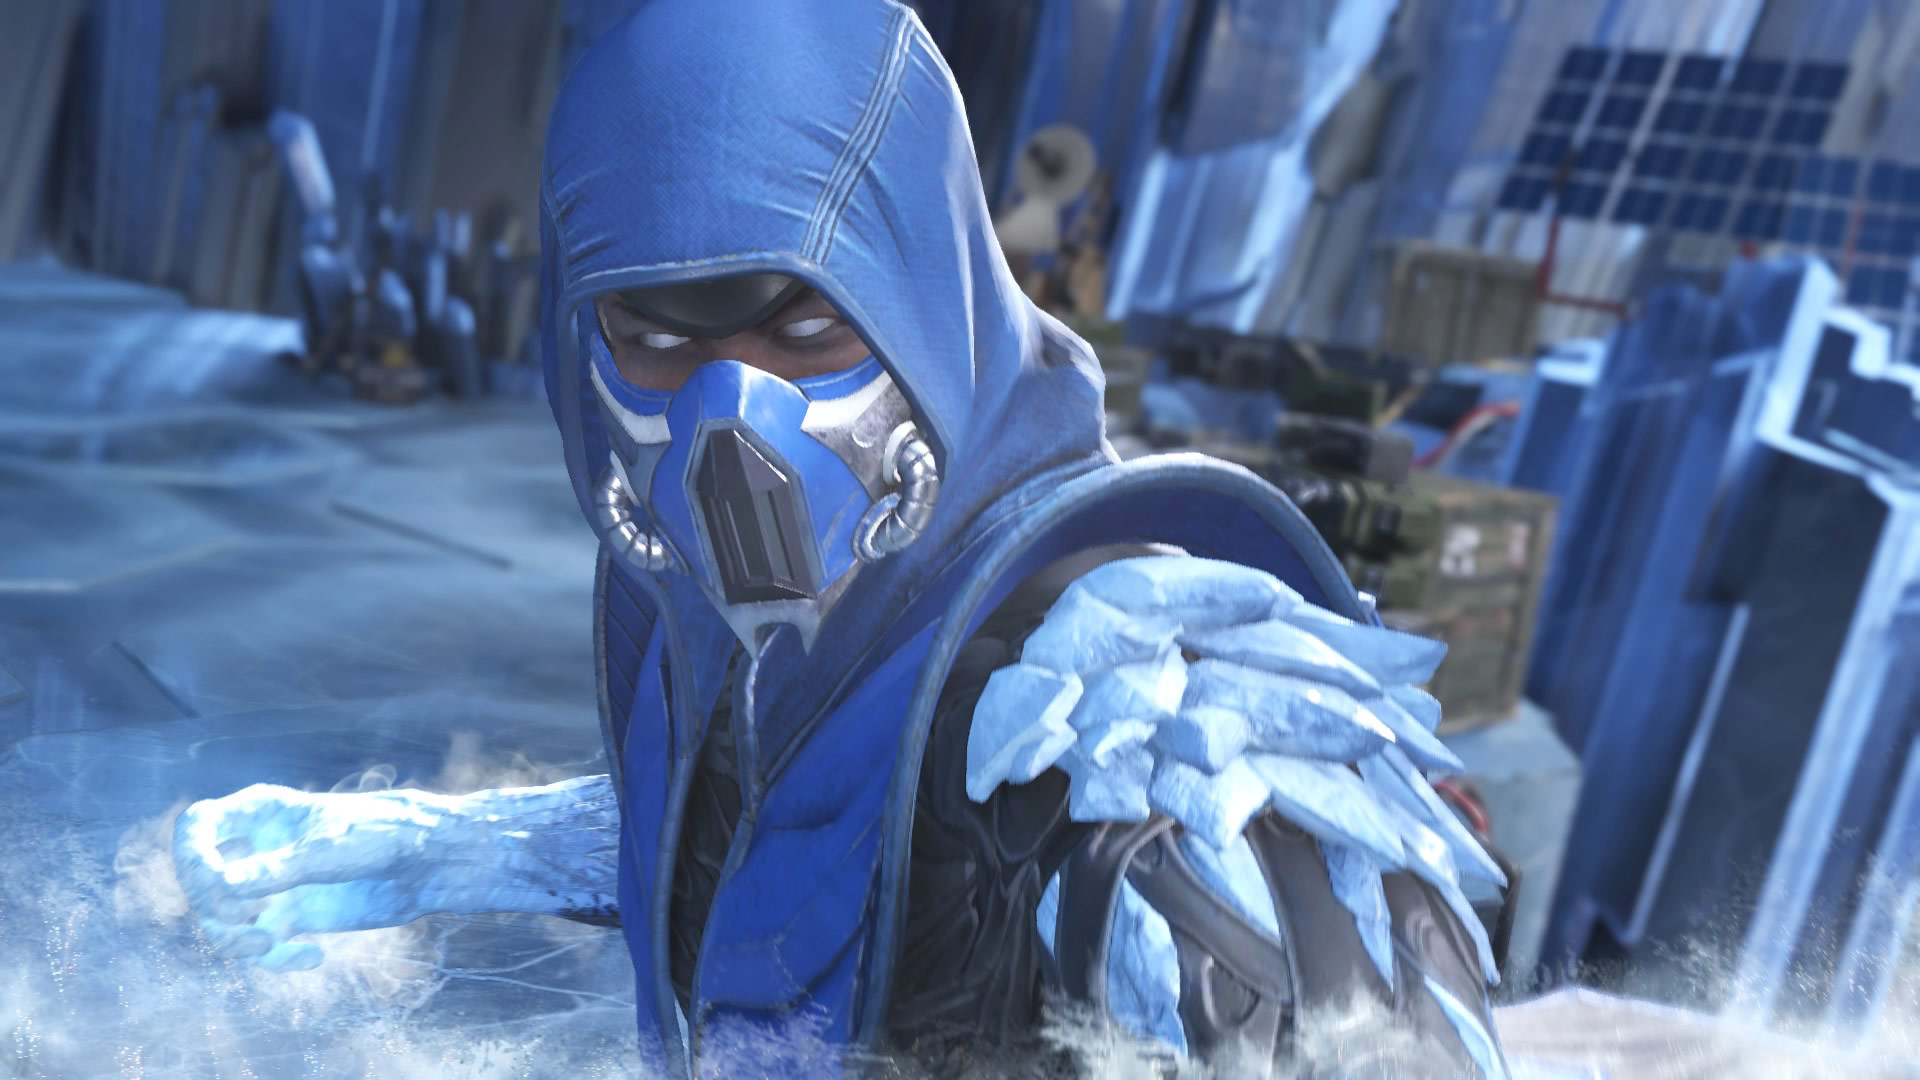 Zero in injustice 2 1 out of 6 image gallery sub zero in injustice 2 1 out of 6 image gallery publicscrutiny Images